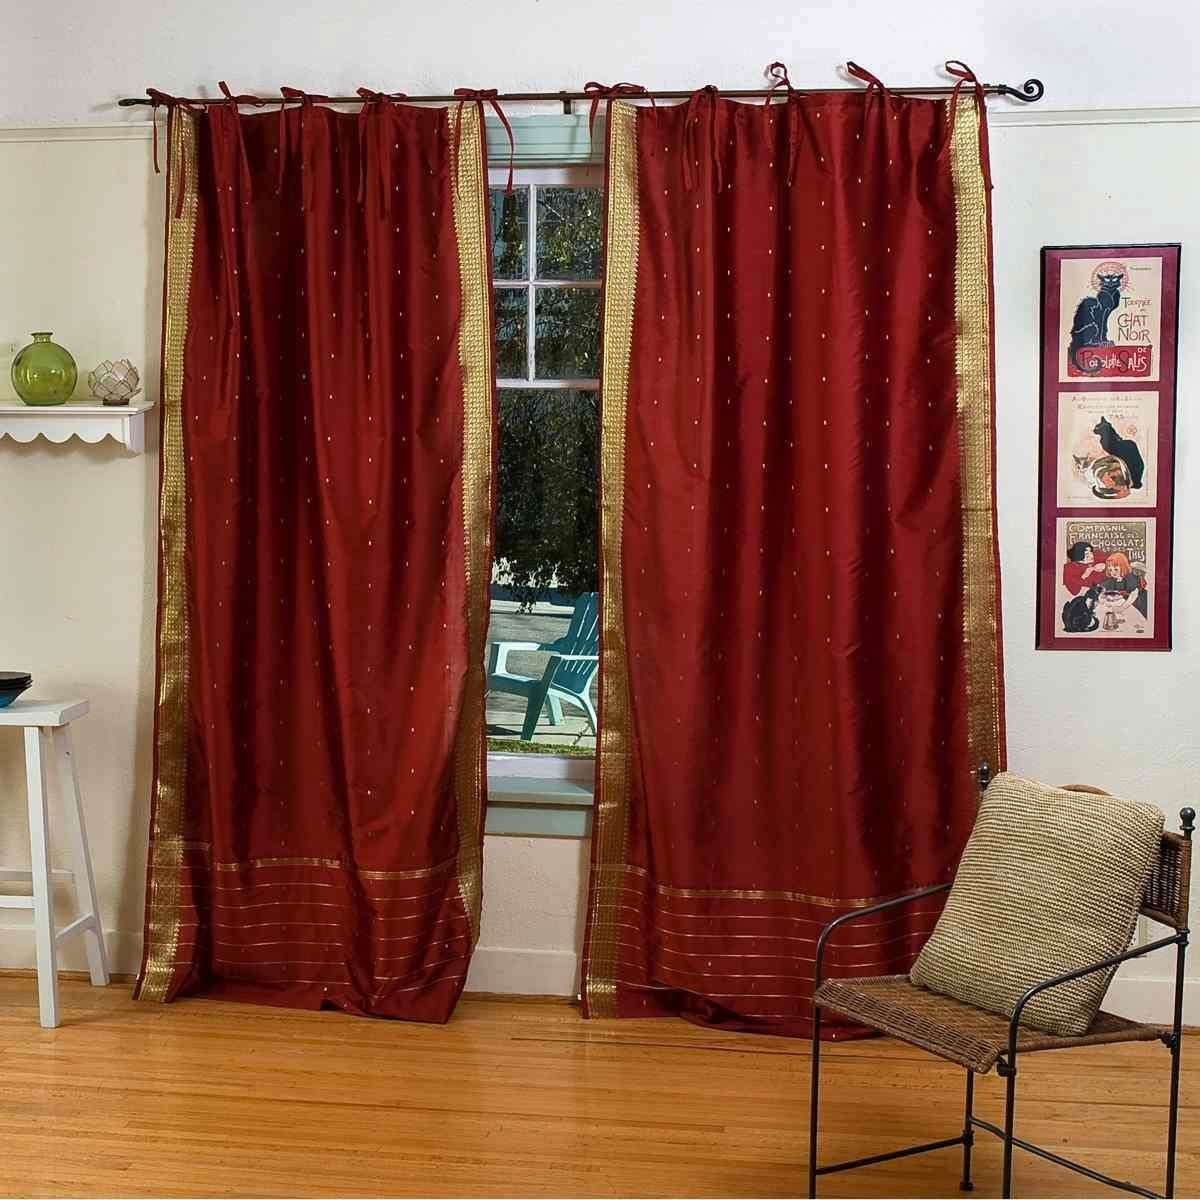 Indian Selections Lined-Rust Tie Top Sheer Sari Curtain Drape Panel – 80W x 120L – Piece